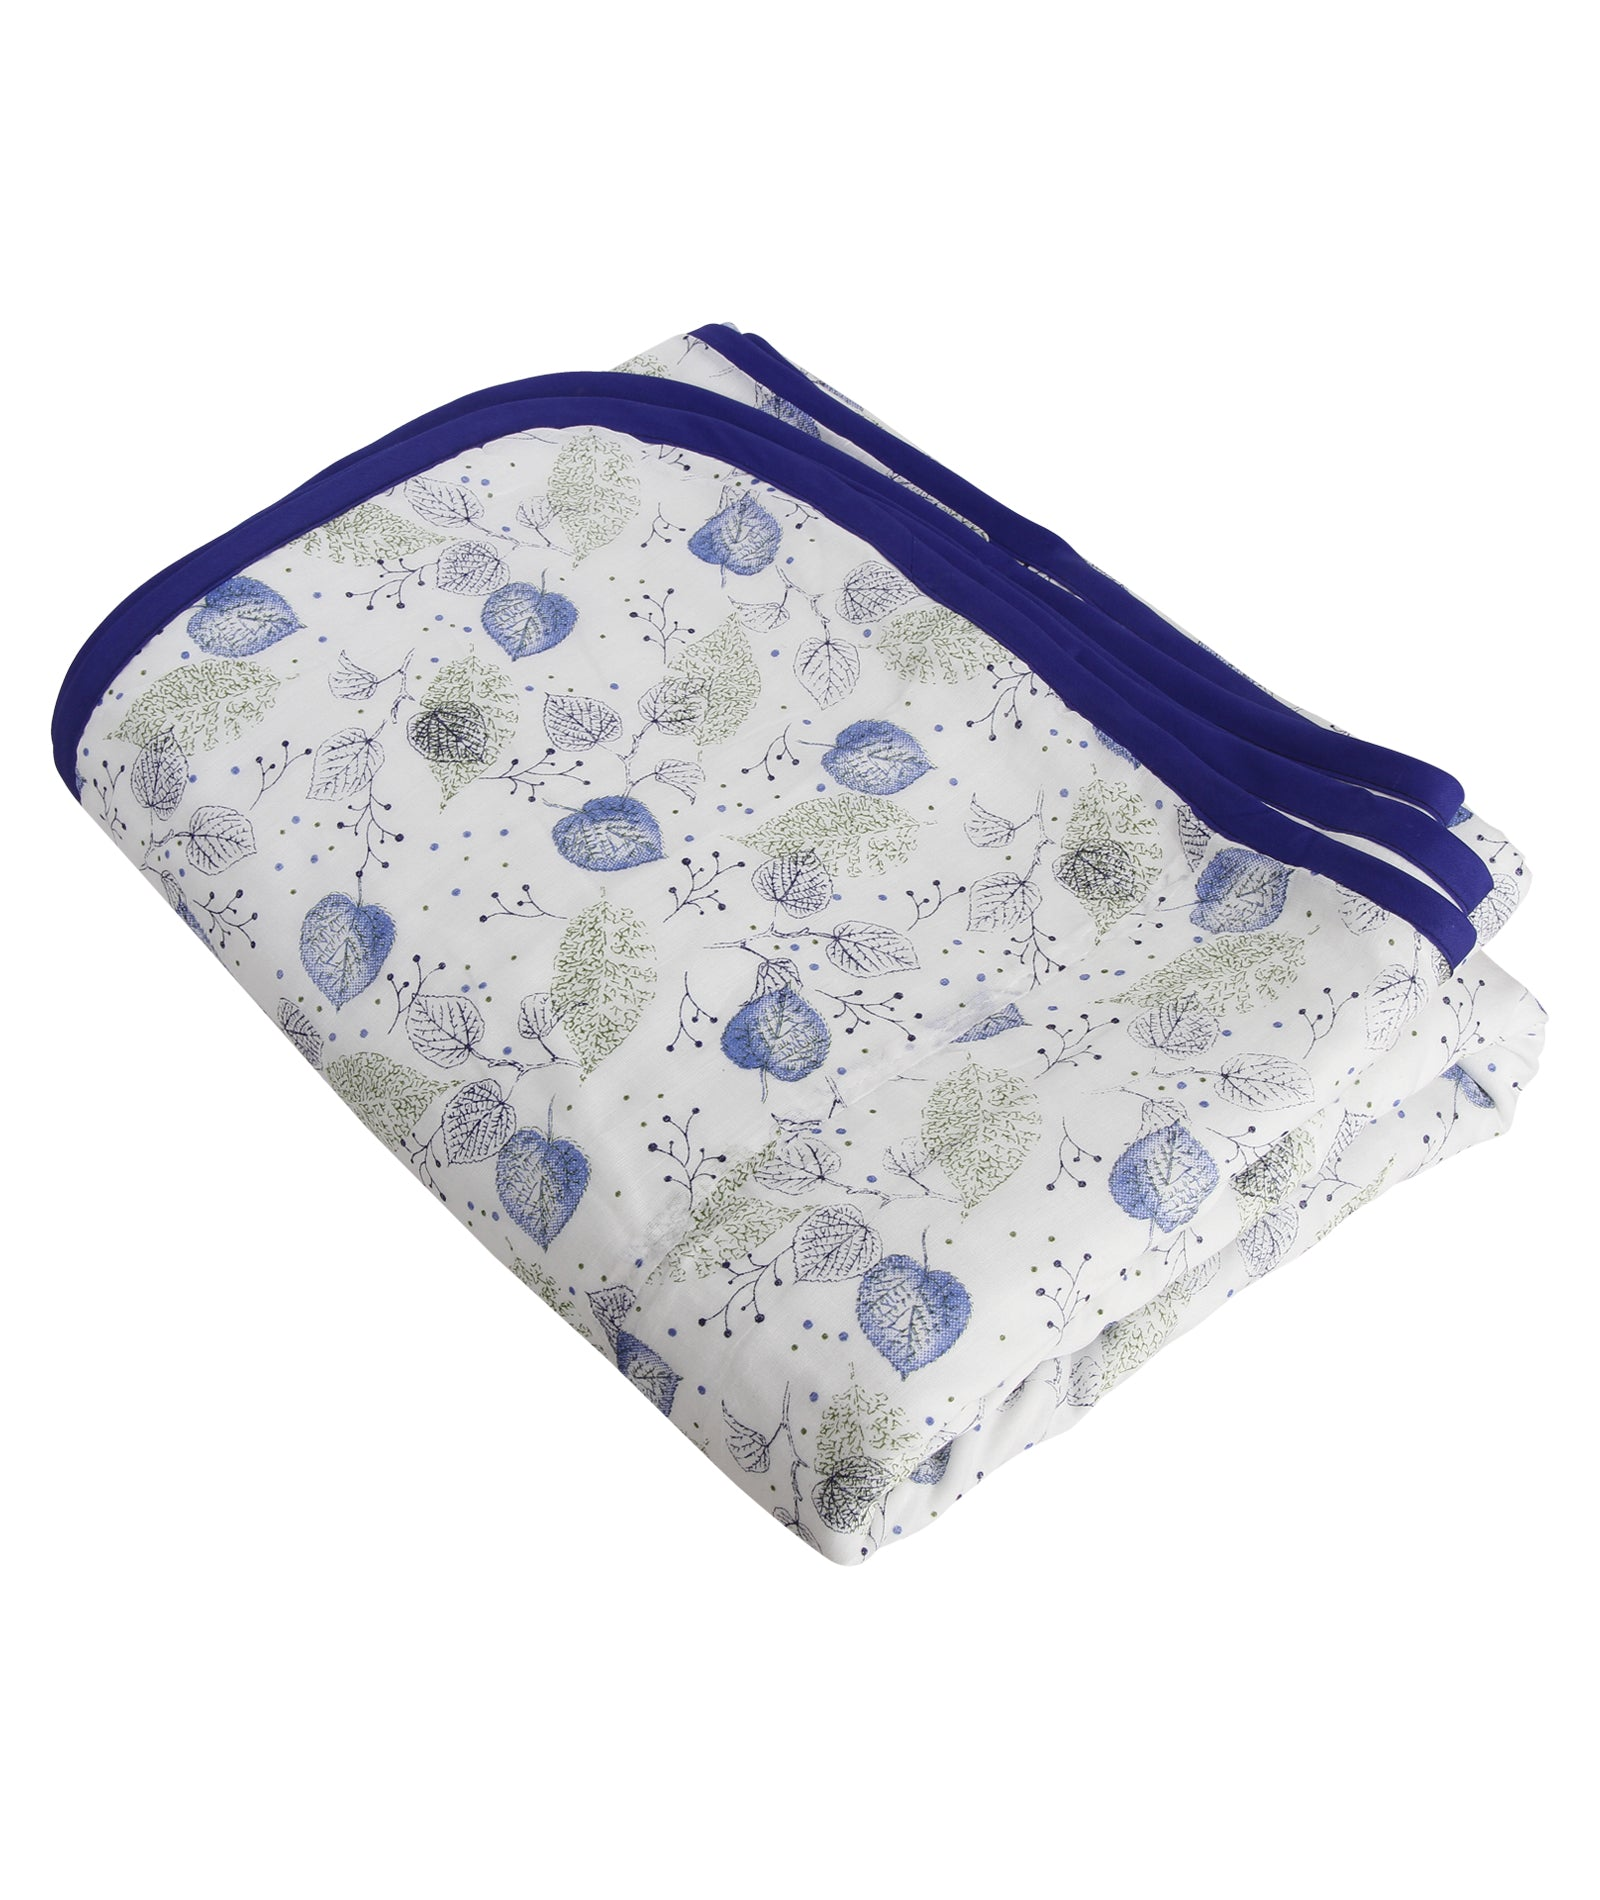 Blue Peepal Leaf Cotton Single Dohar (88 x 58 inches)